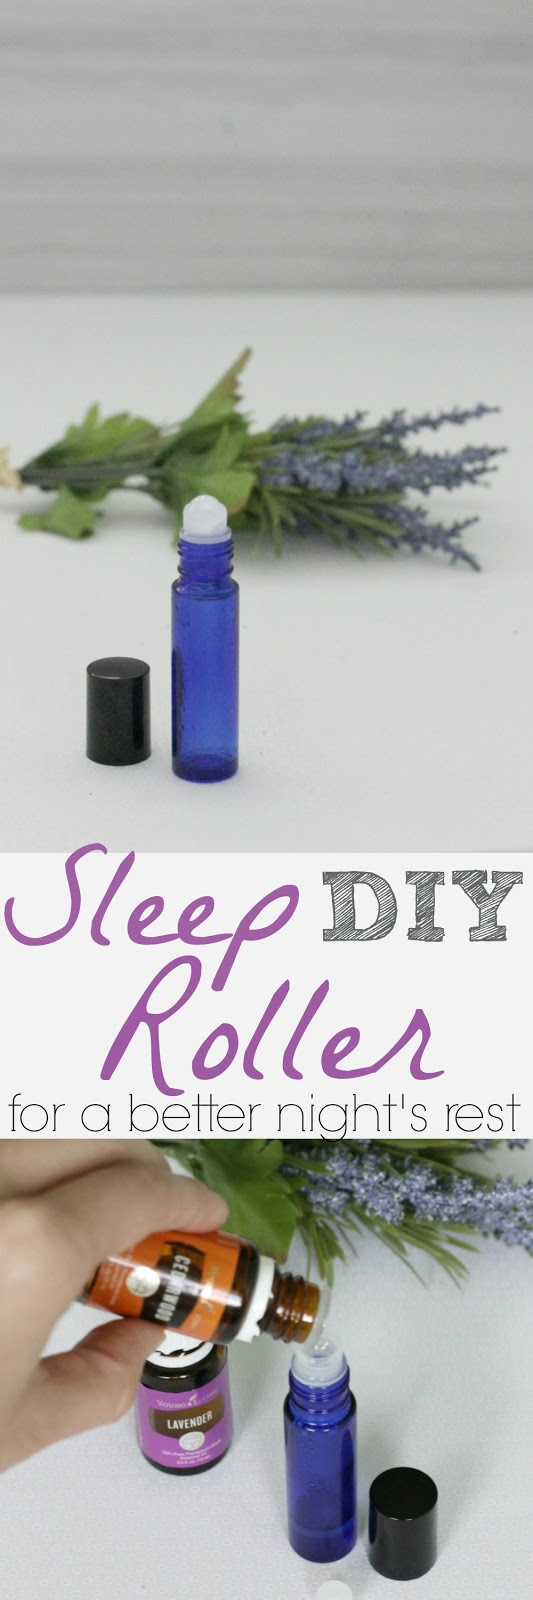 DIY sleep roller with magnesium and essential oils to help you sleep better